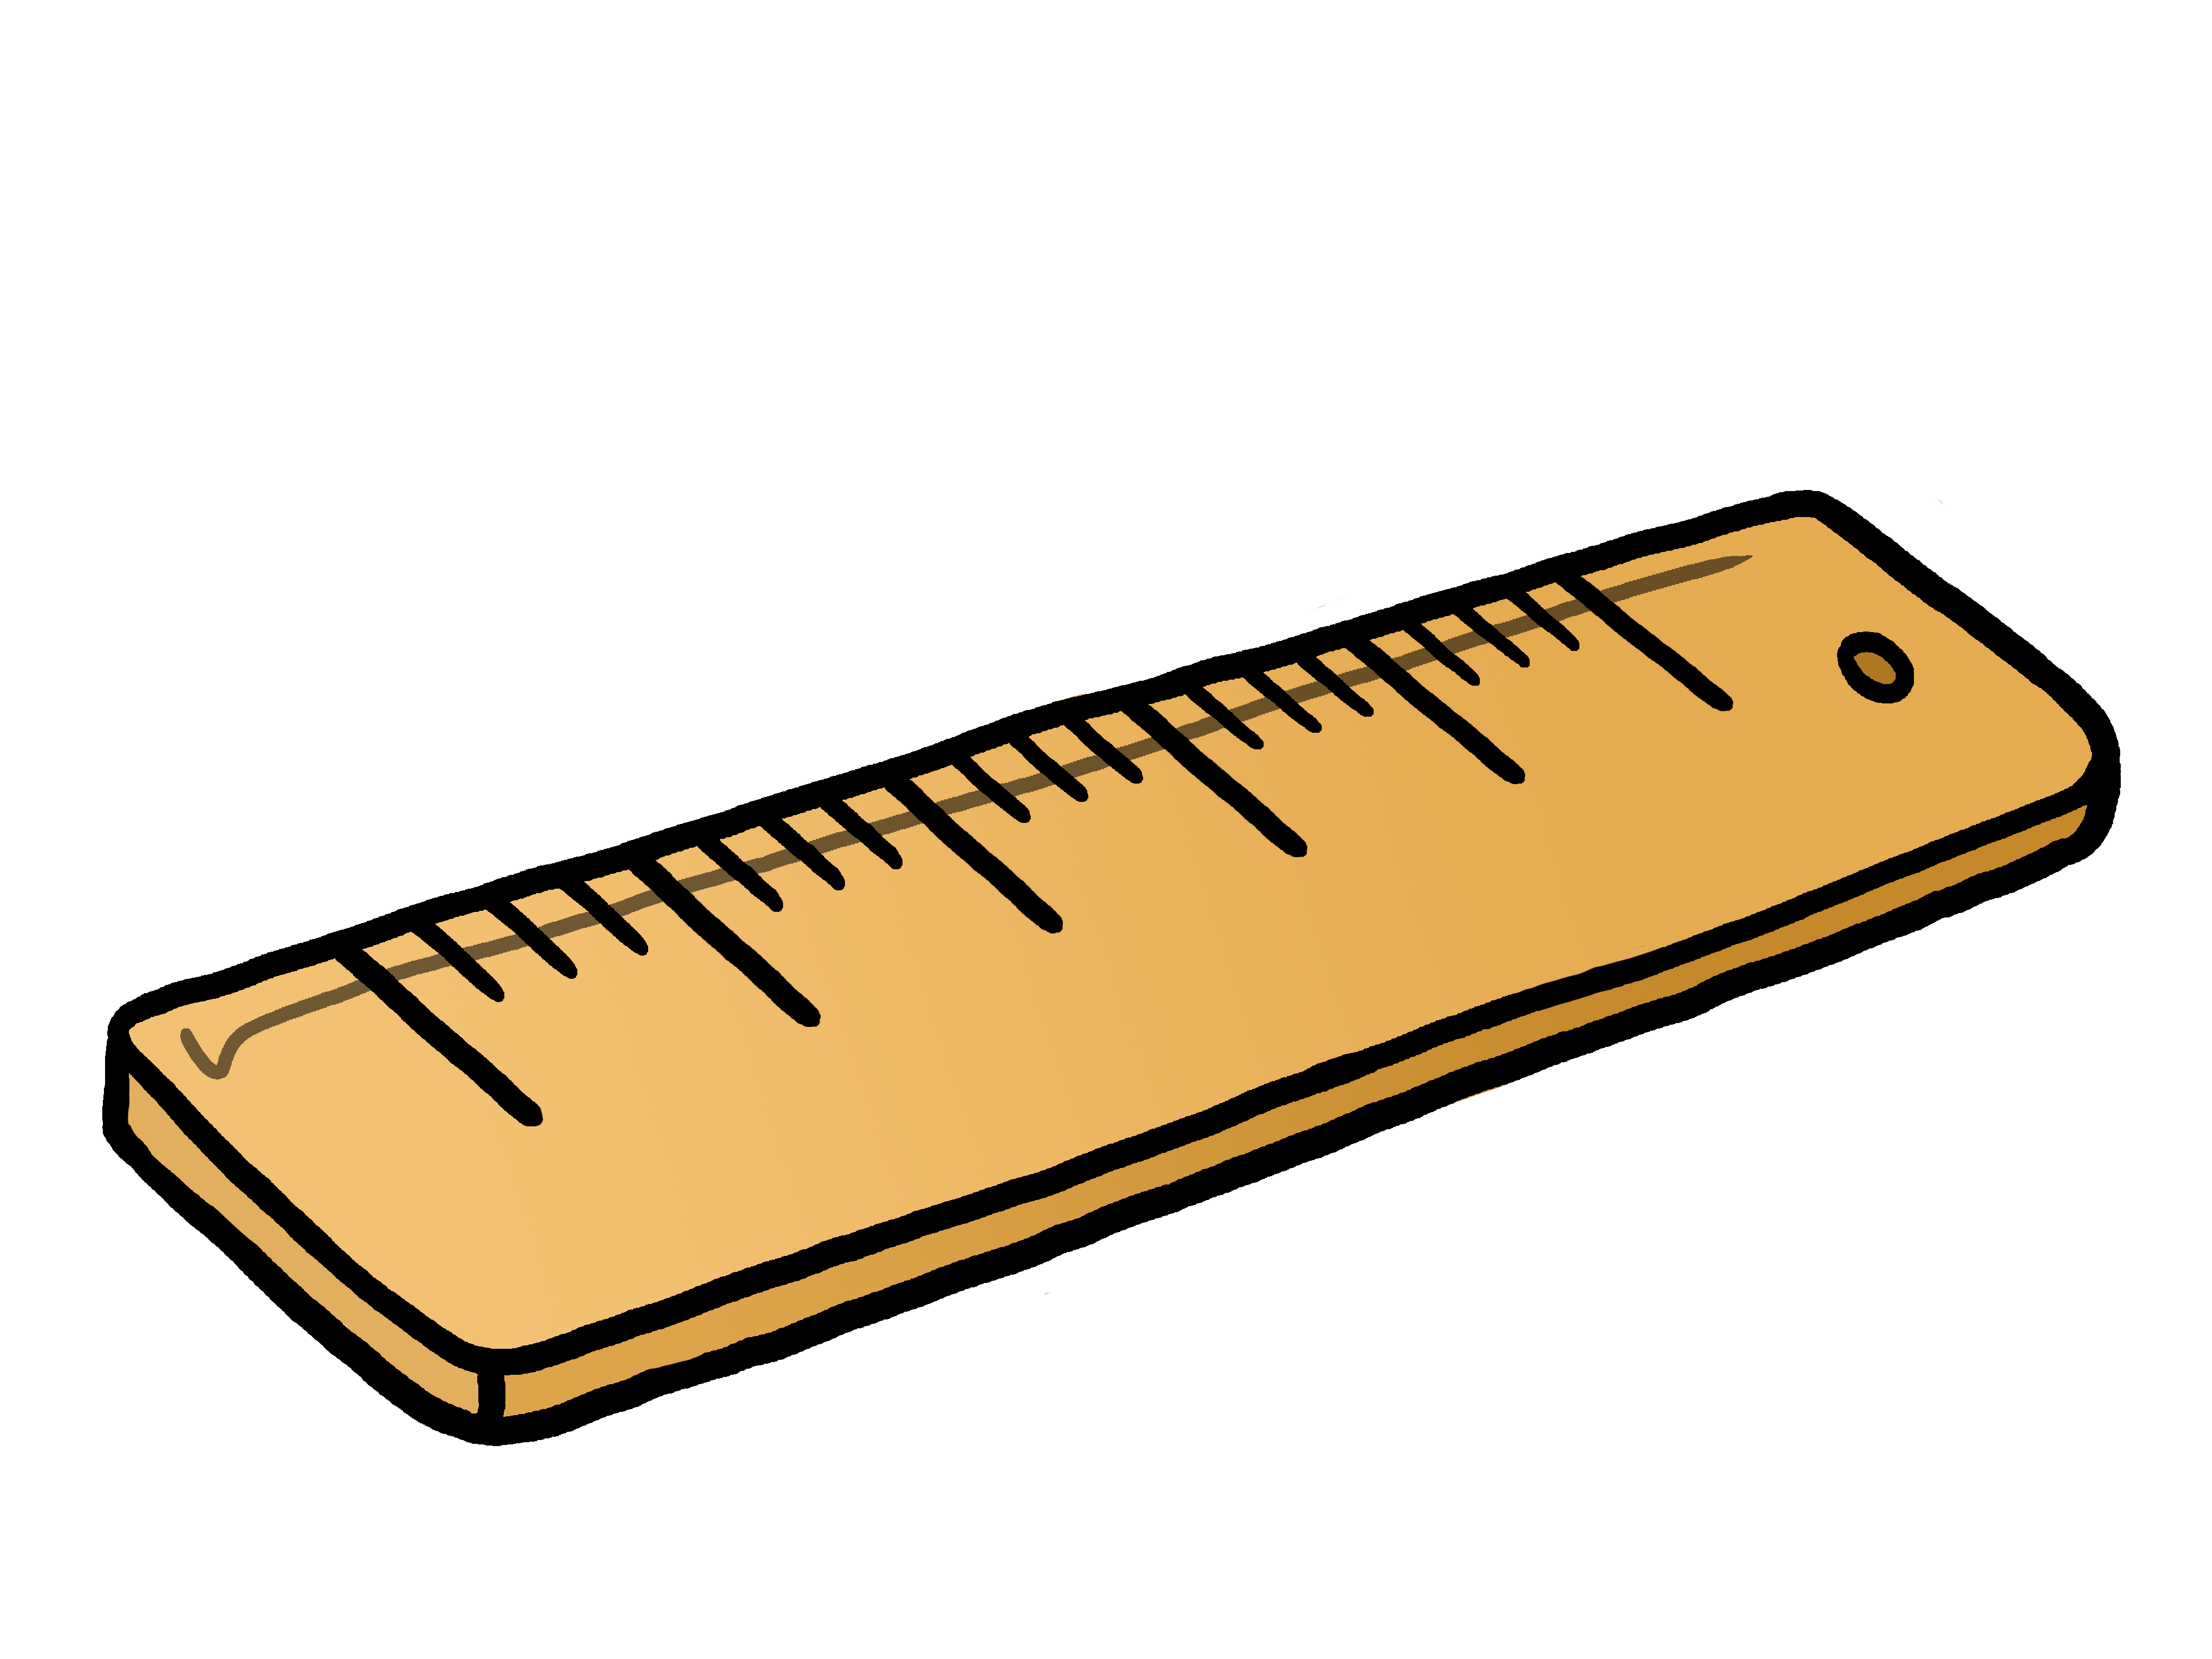 Ruler clipart long ruler.